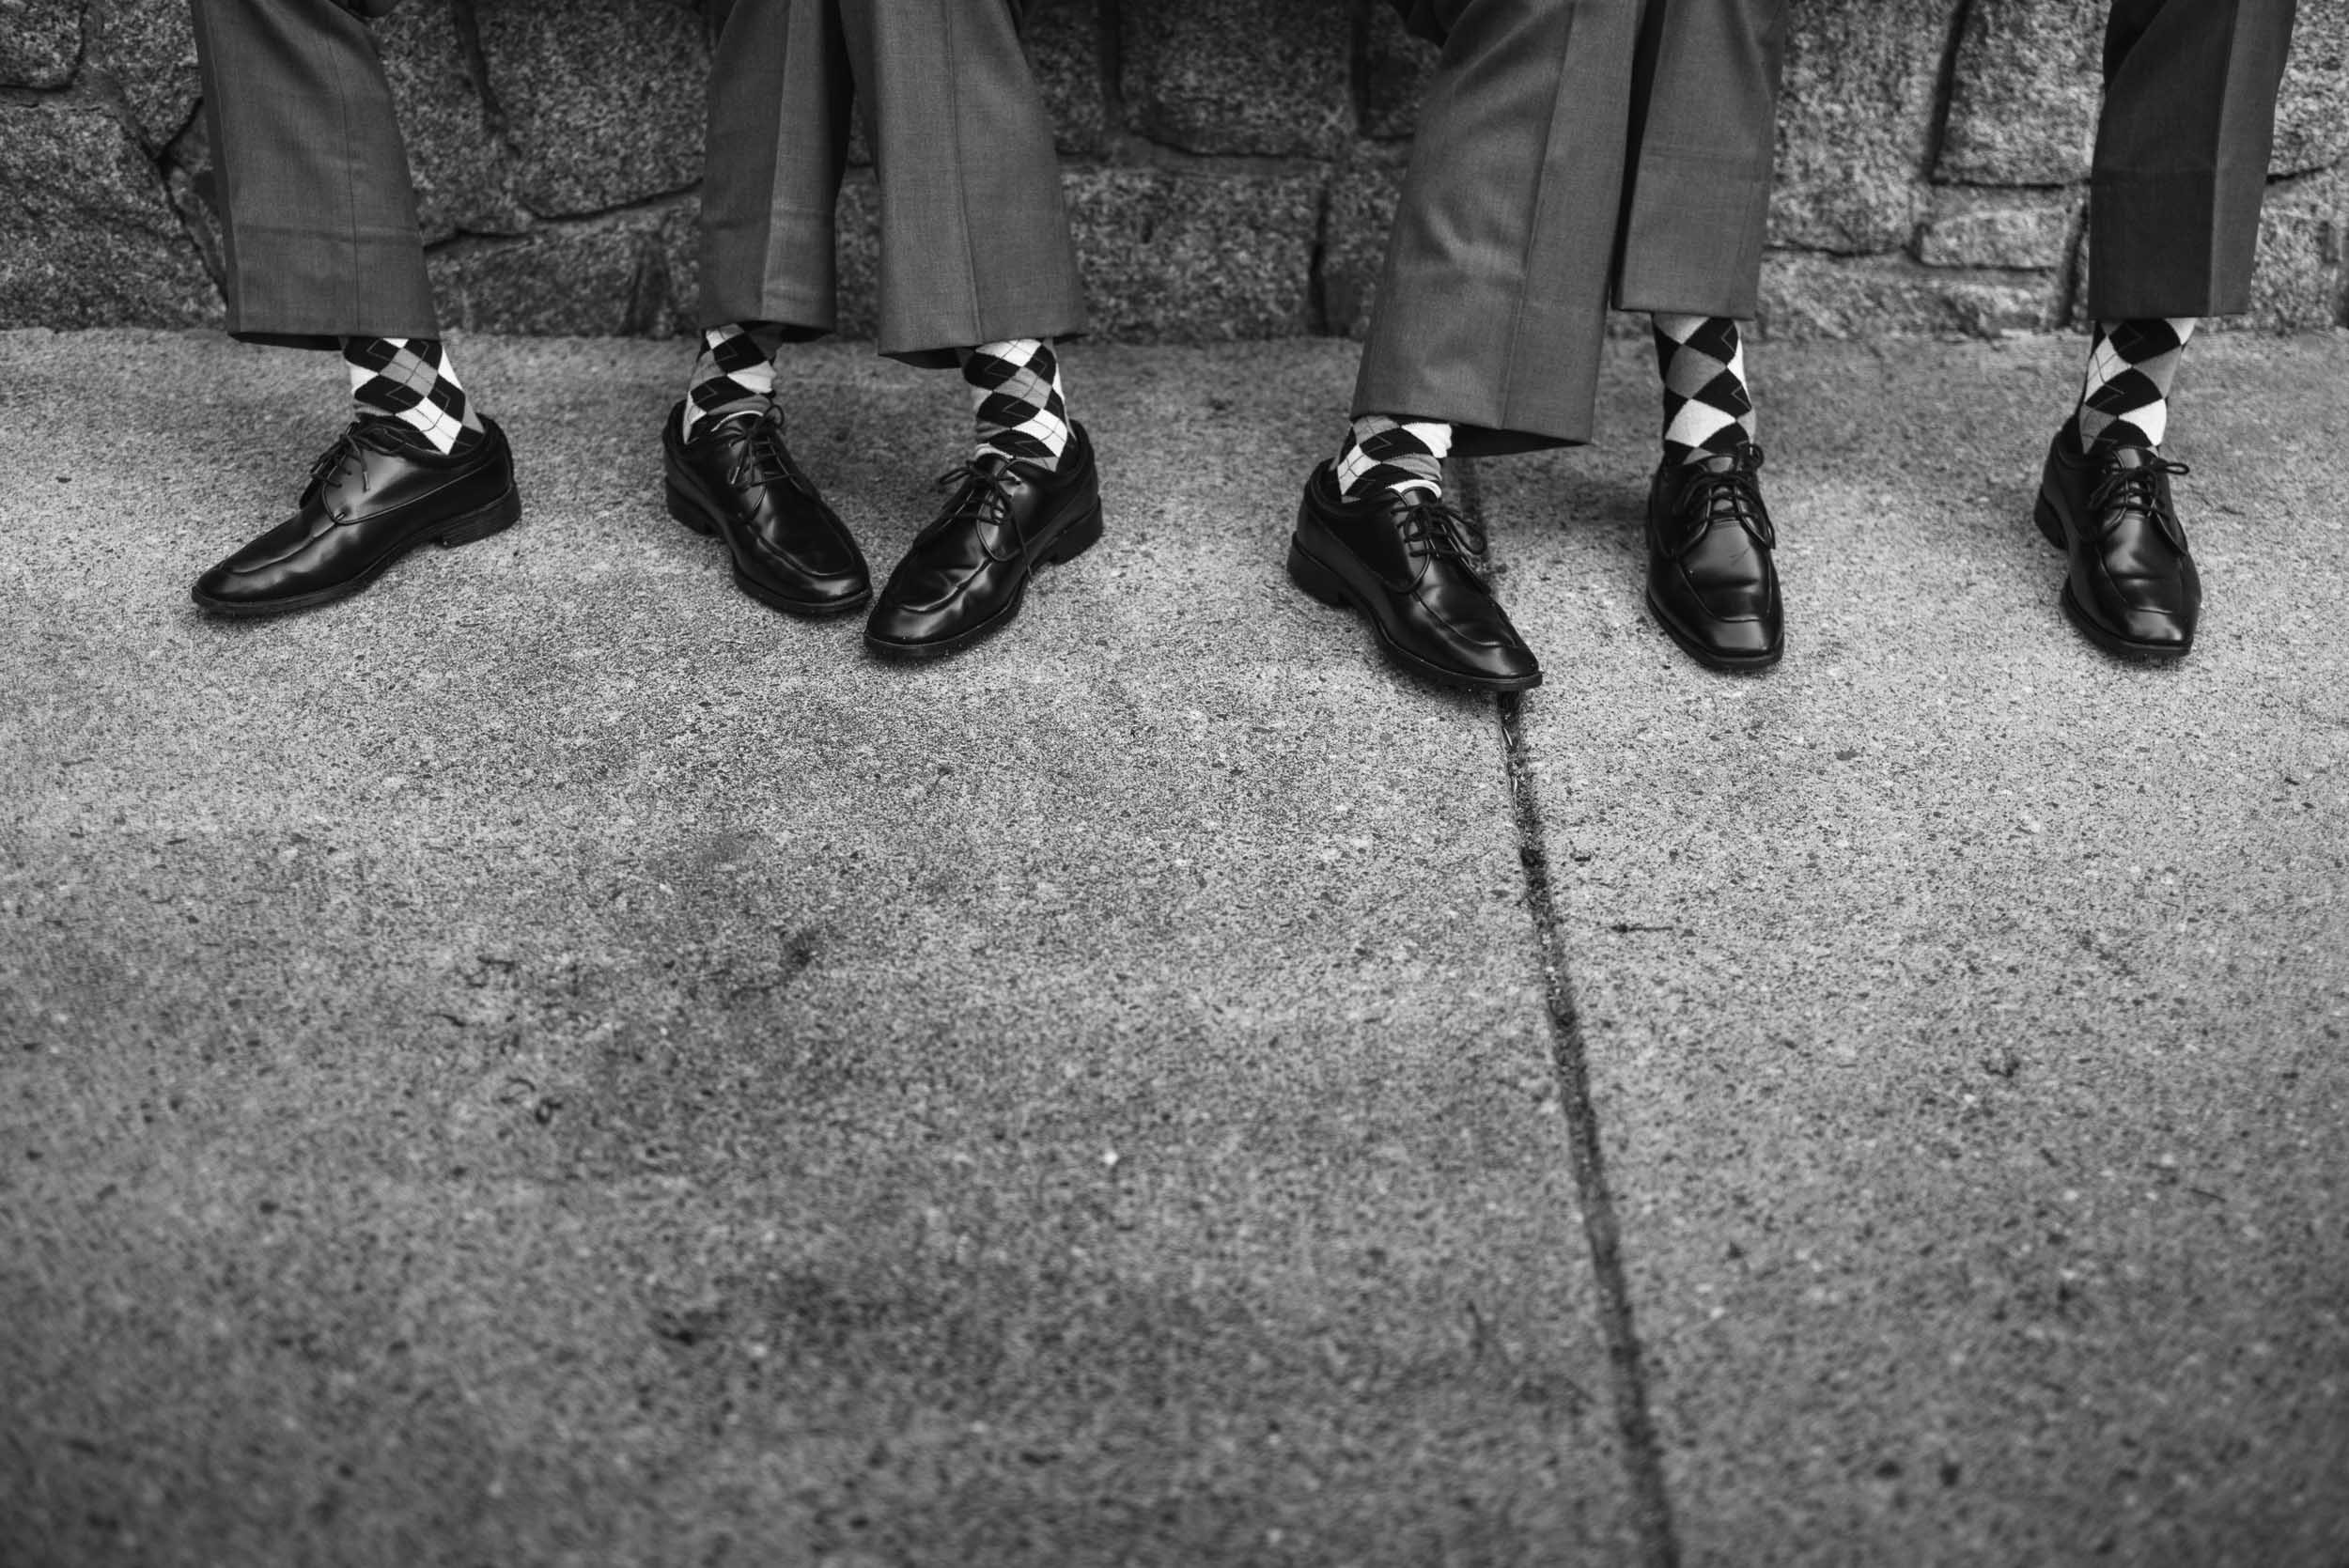 Groomsmen matching socks and shoes